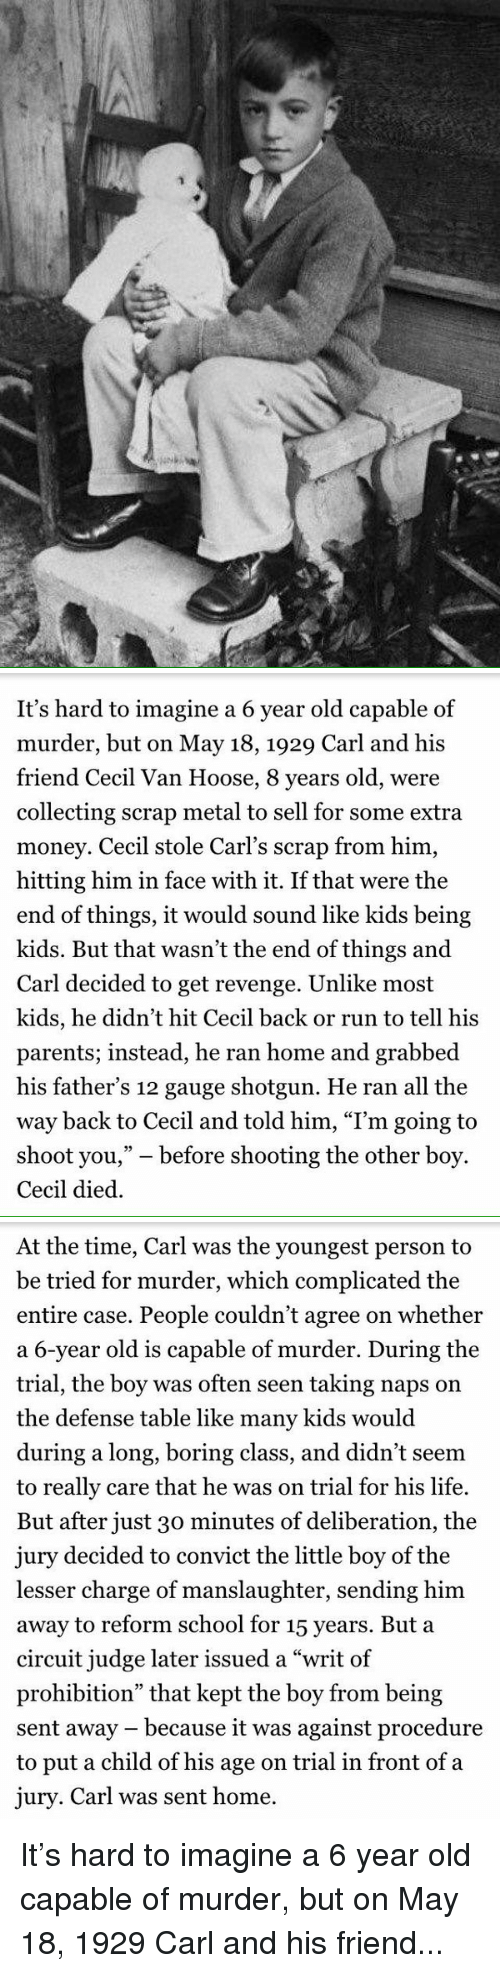 "Boring Class: /t /7   It's hard to imagine a 6 year old capable of  murder, but on May 18, 1929 Carl and his  friend Cecil Van Hoose, 8 years old, were  collecting scrap metal to sell for some extra  money. Cecil stole Carl's scrap from him,  hitting him in face with it. If that were the  end of things, it would sound like kids being  kids. But that wasn't the end of things and  Carl decided to get revenge. Unlike most  kids, he didn't hit Cecil back or run to tell his  parents; instead, he ran home and grabbed  his father's 12 gauge shotgun. He ran all the  way back to Cecil and told him, ""I'm going to  shoot you,"" before shooting the other boy.  Cecil died.   At the time, Carl was the youngest person to  be tried for murder, which complicated the  entire case. People couldn't agree on whether  a 6-year old is capable of murder. During the  trial, the boy was often seen taking naps on  the defense table like many kids would  during a long, boring class, and didn't seem  to really care that he was on trial for his life.  But after just 30 minutes of deliberation, the  jury decided to convict the little boy of the  lesser charge of manslaughter, sending him  away to reform school for 15 years. But a  circuit judge later issued a ""writ of  prohibition"" that kept the boy from being  sent away because it was against procedure  to put a child of his age on trial in front of a  jury. Carl was sent home. It's hard to imagine a 6 year old capable of murder, but on May 18, 1929 Carl and his friend..."